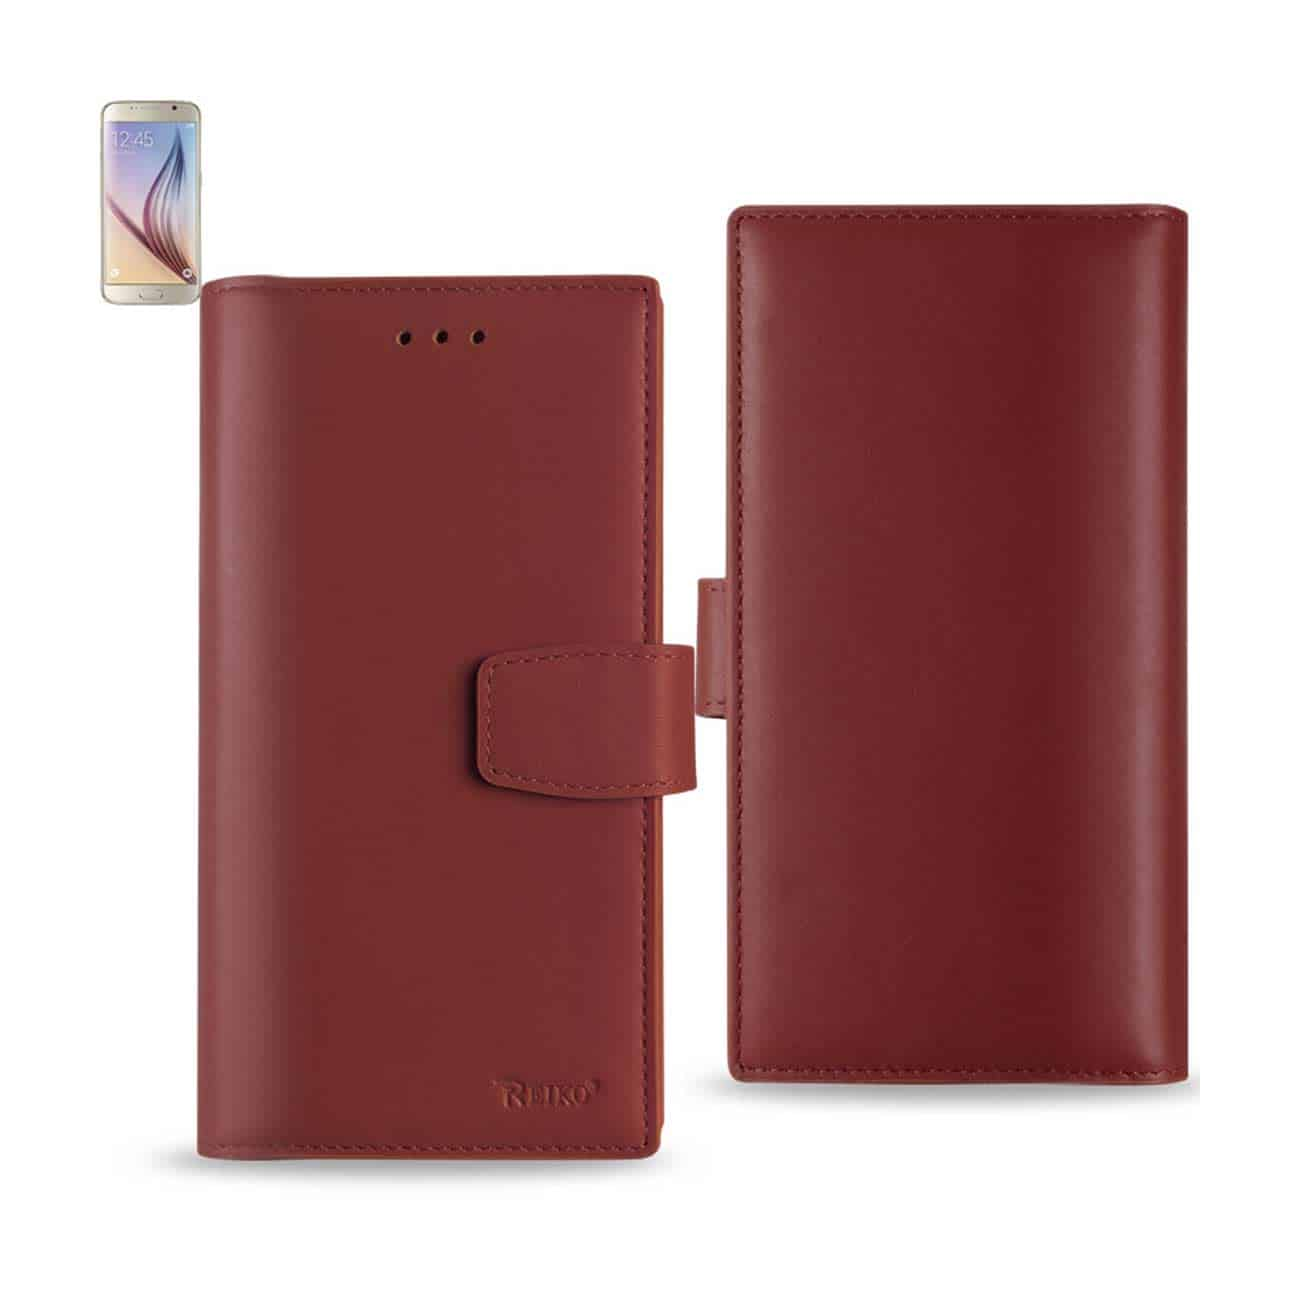 SAMSUNG GALAXY S6 GENUINE LEATHER RFID WALLET CASE IN BURGUNDY